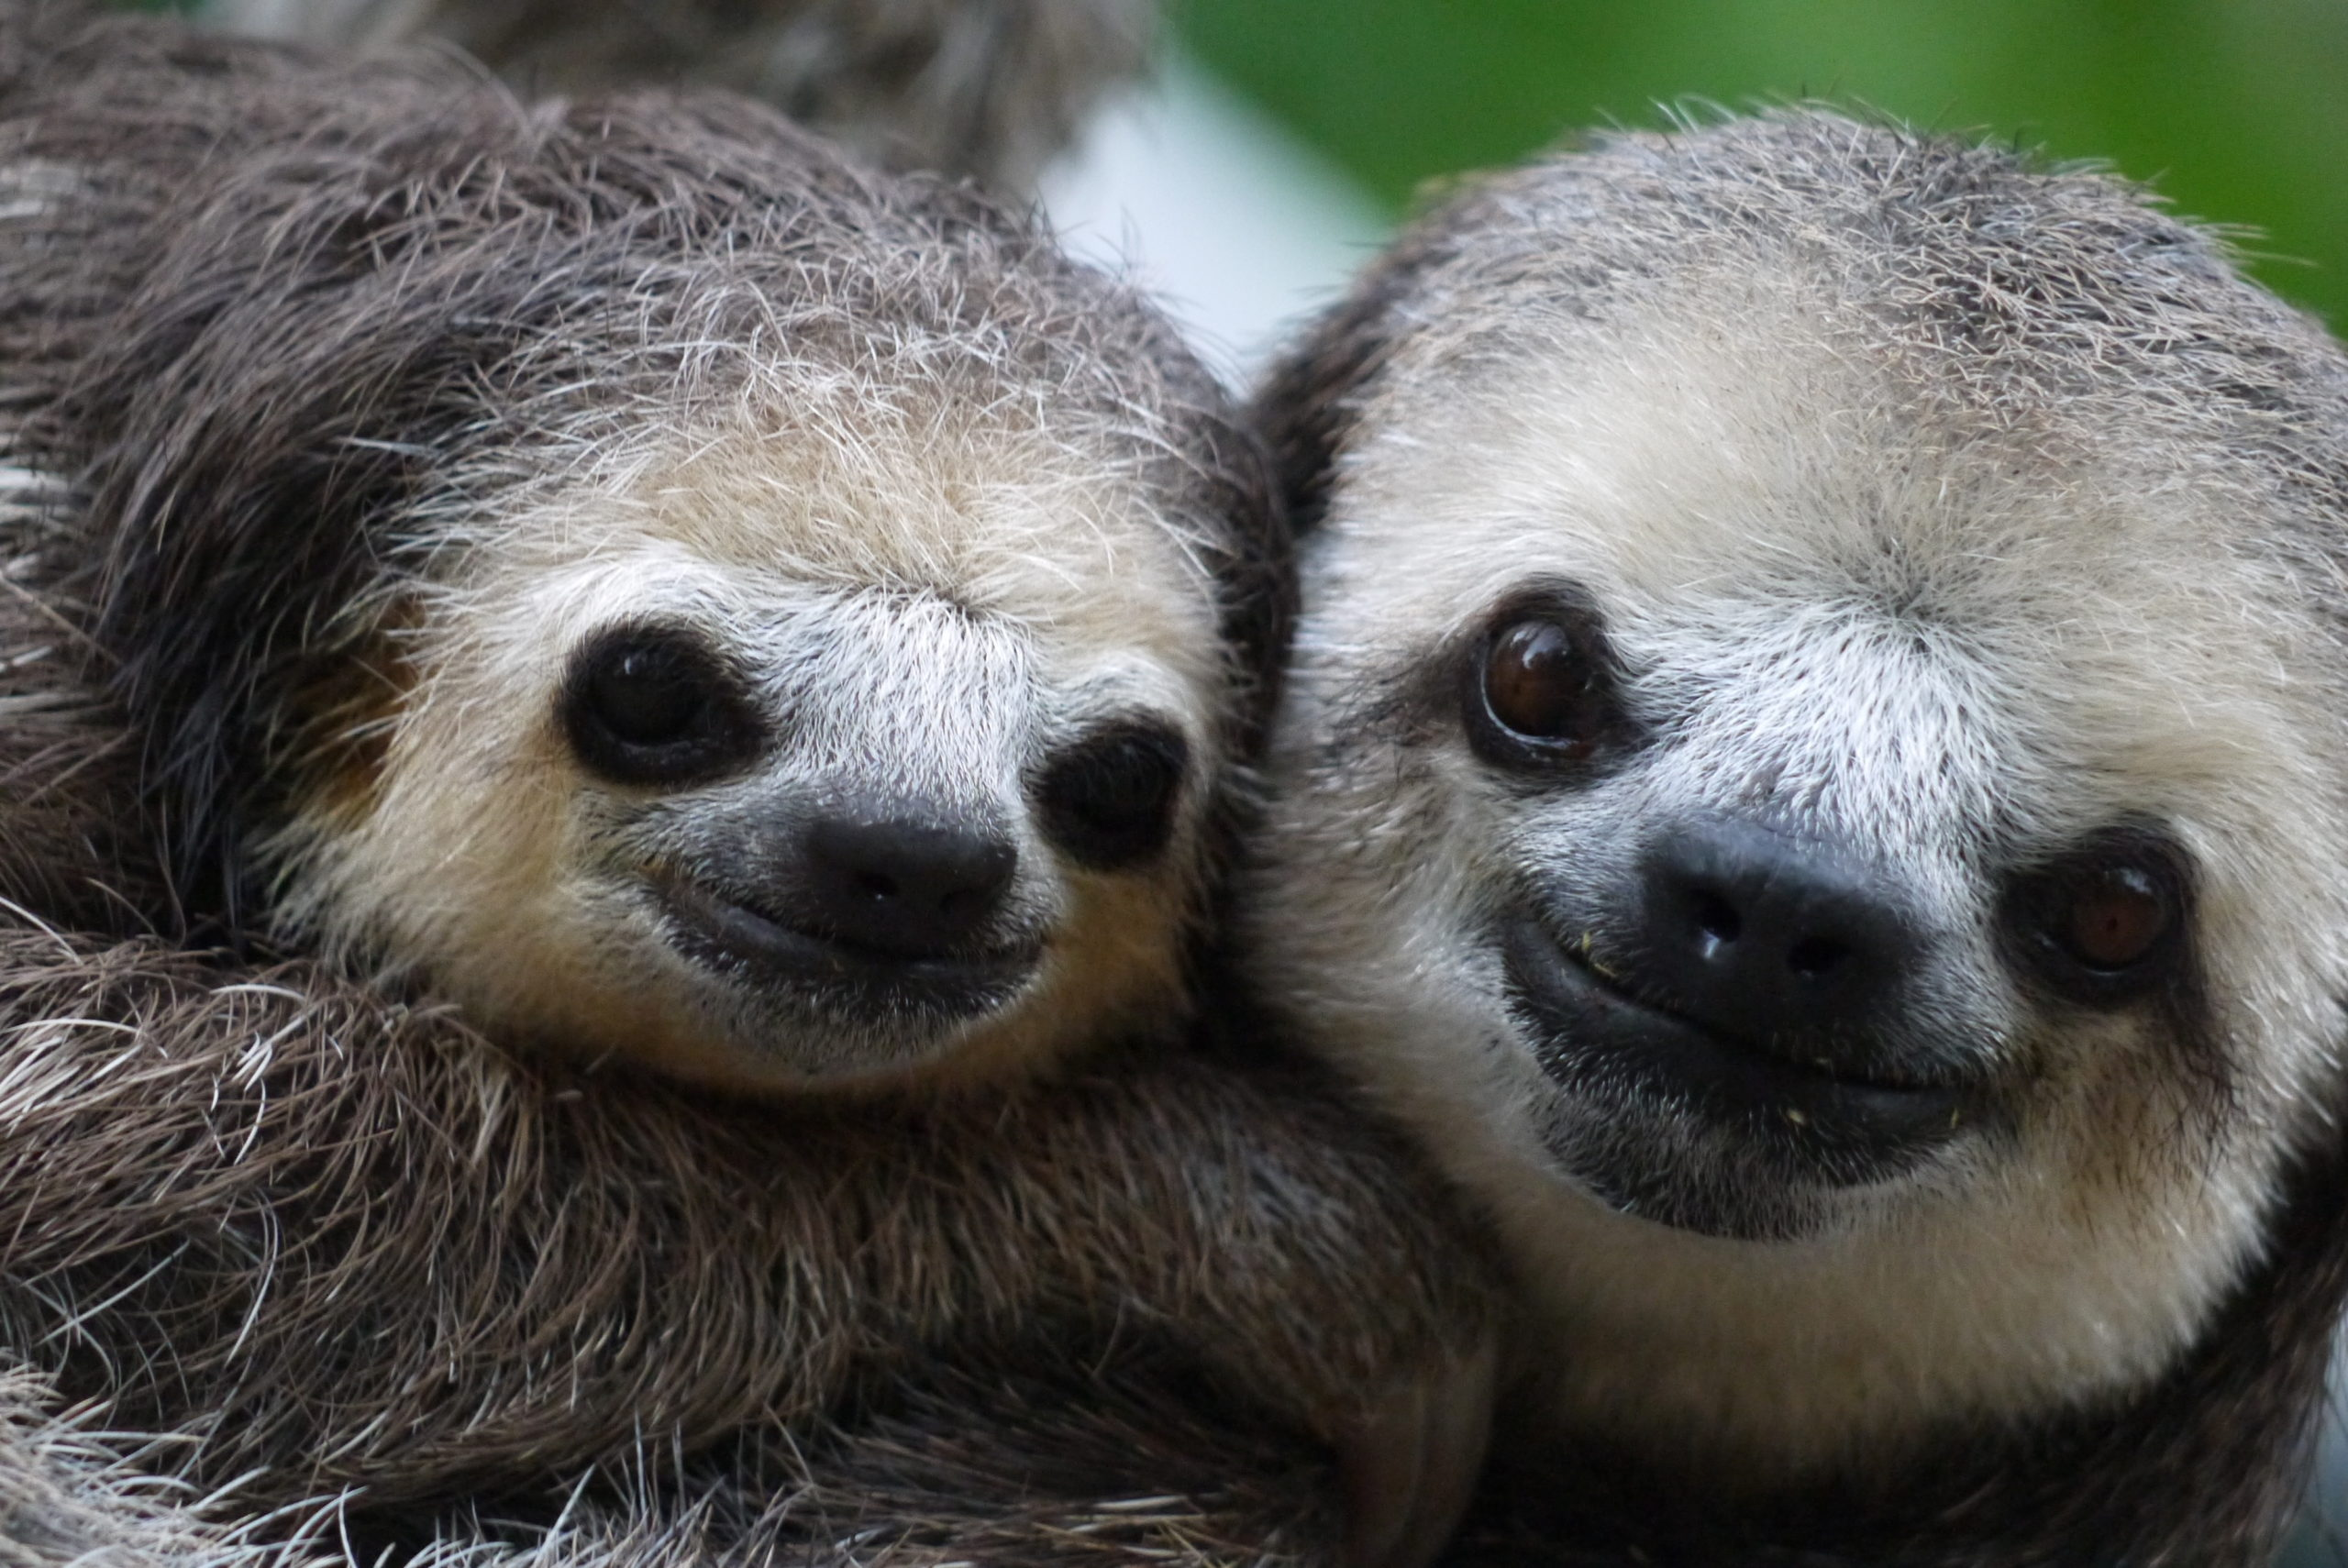 Two sloths hanging in a tree